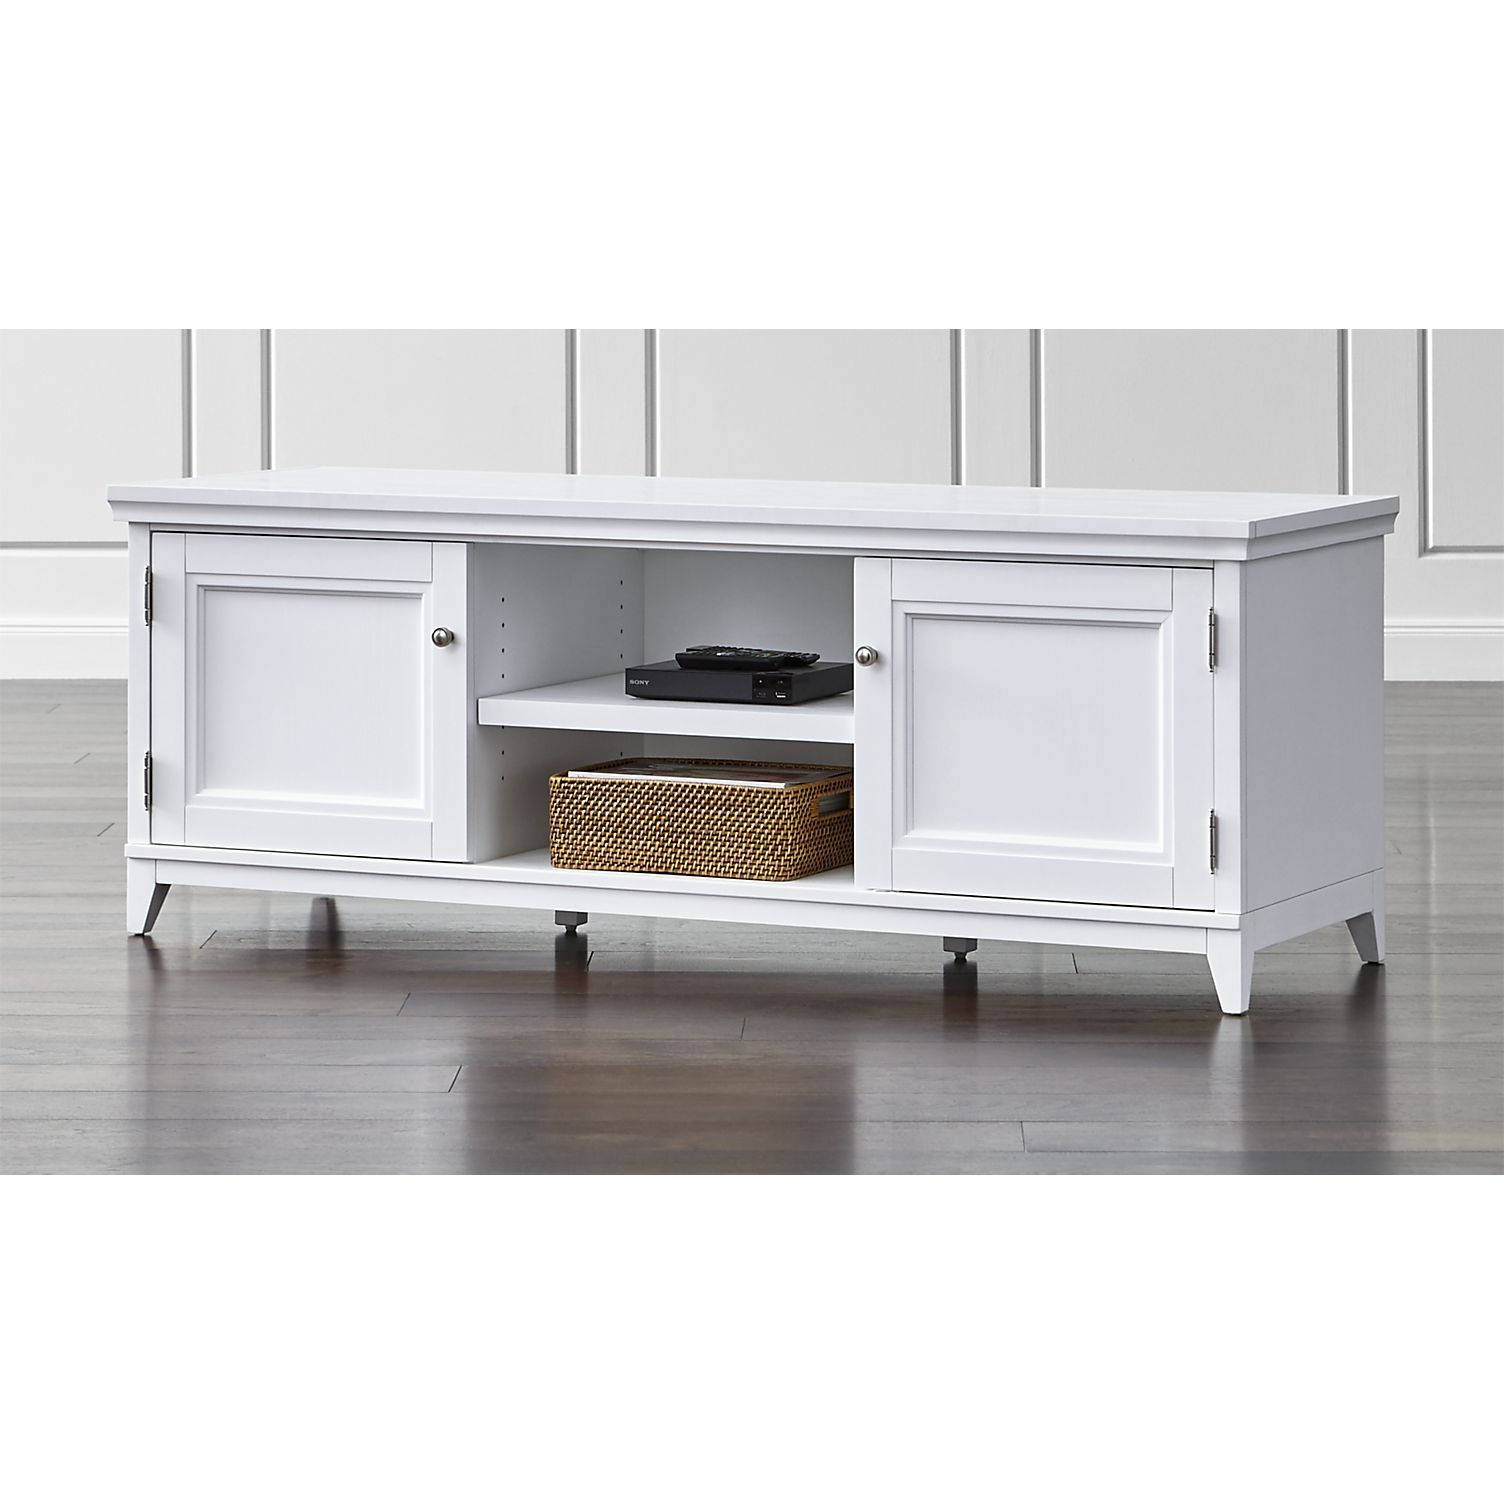 Conquer the clutter in style with our classically handsome harrison modular open media tv stand the foundation of your ideal home media room